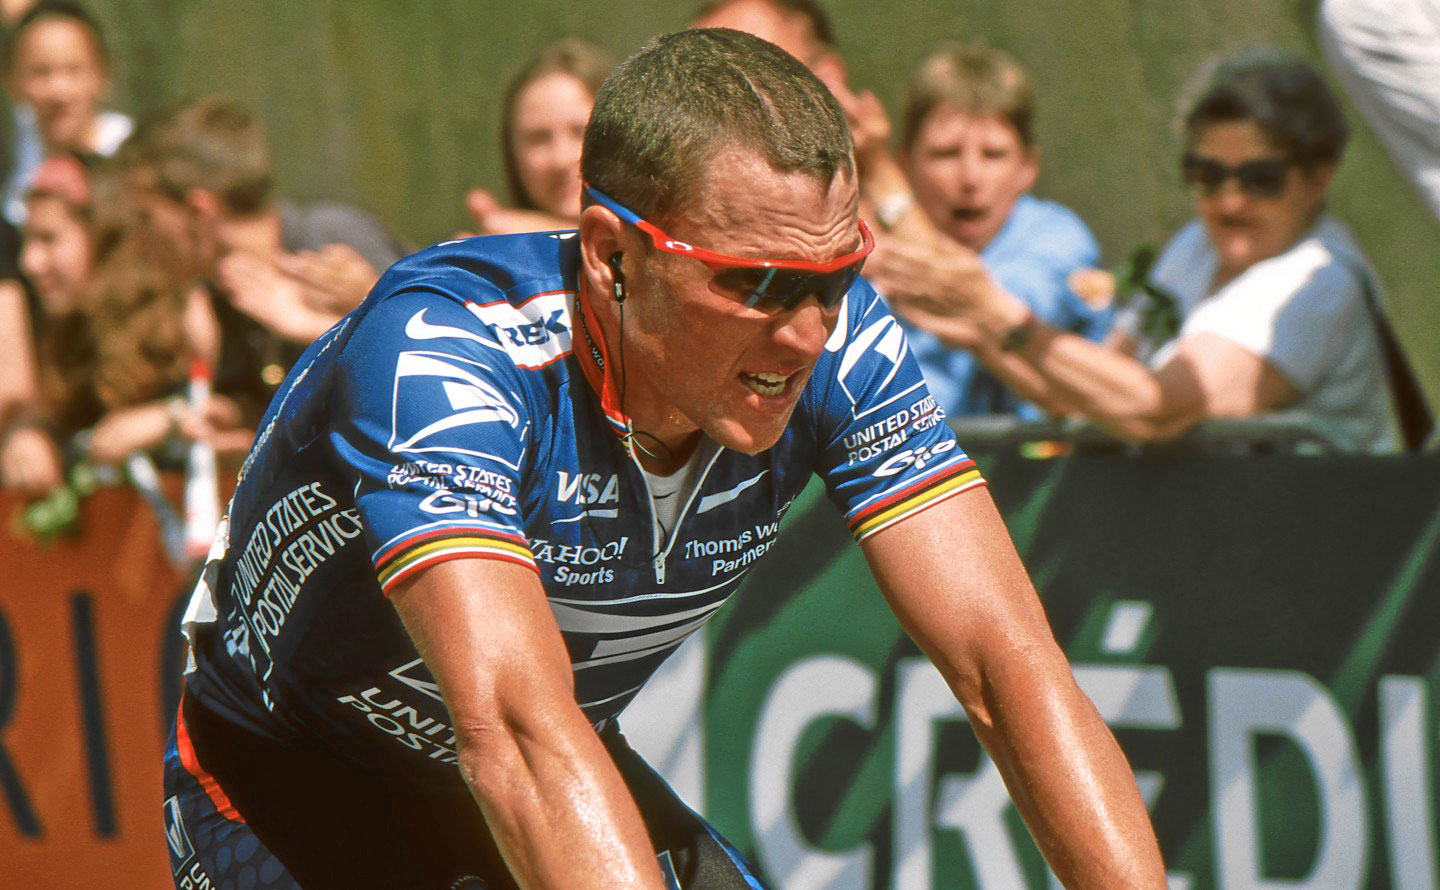 Lance Armstrong 2002 w 20 Actors Who Looked Exactly Like The Real People They Played